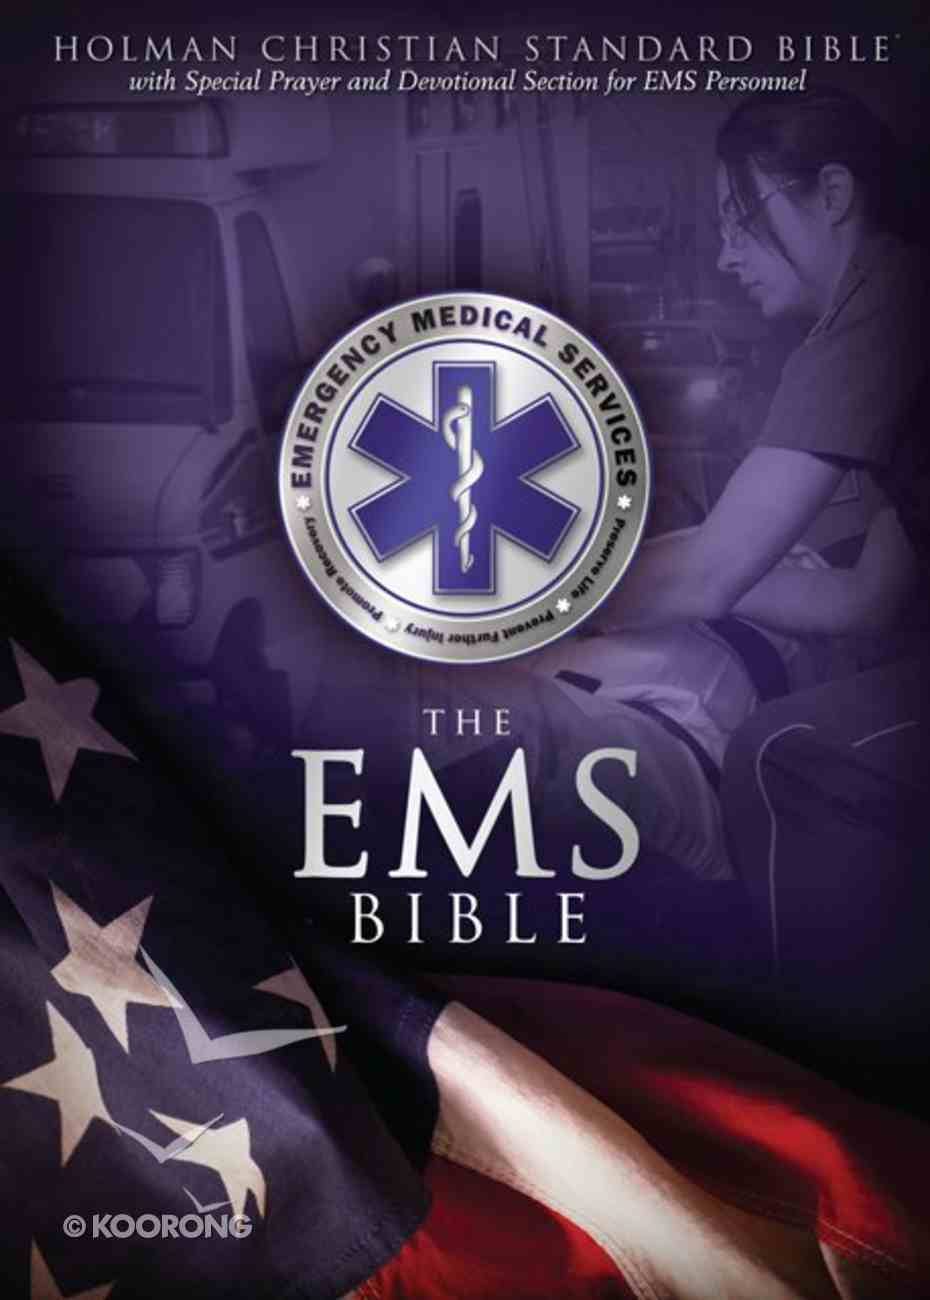 HCSB Emergency Medical Services Bible, Blue Leathertouch Imitation Leather